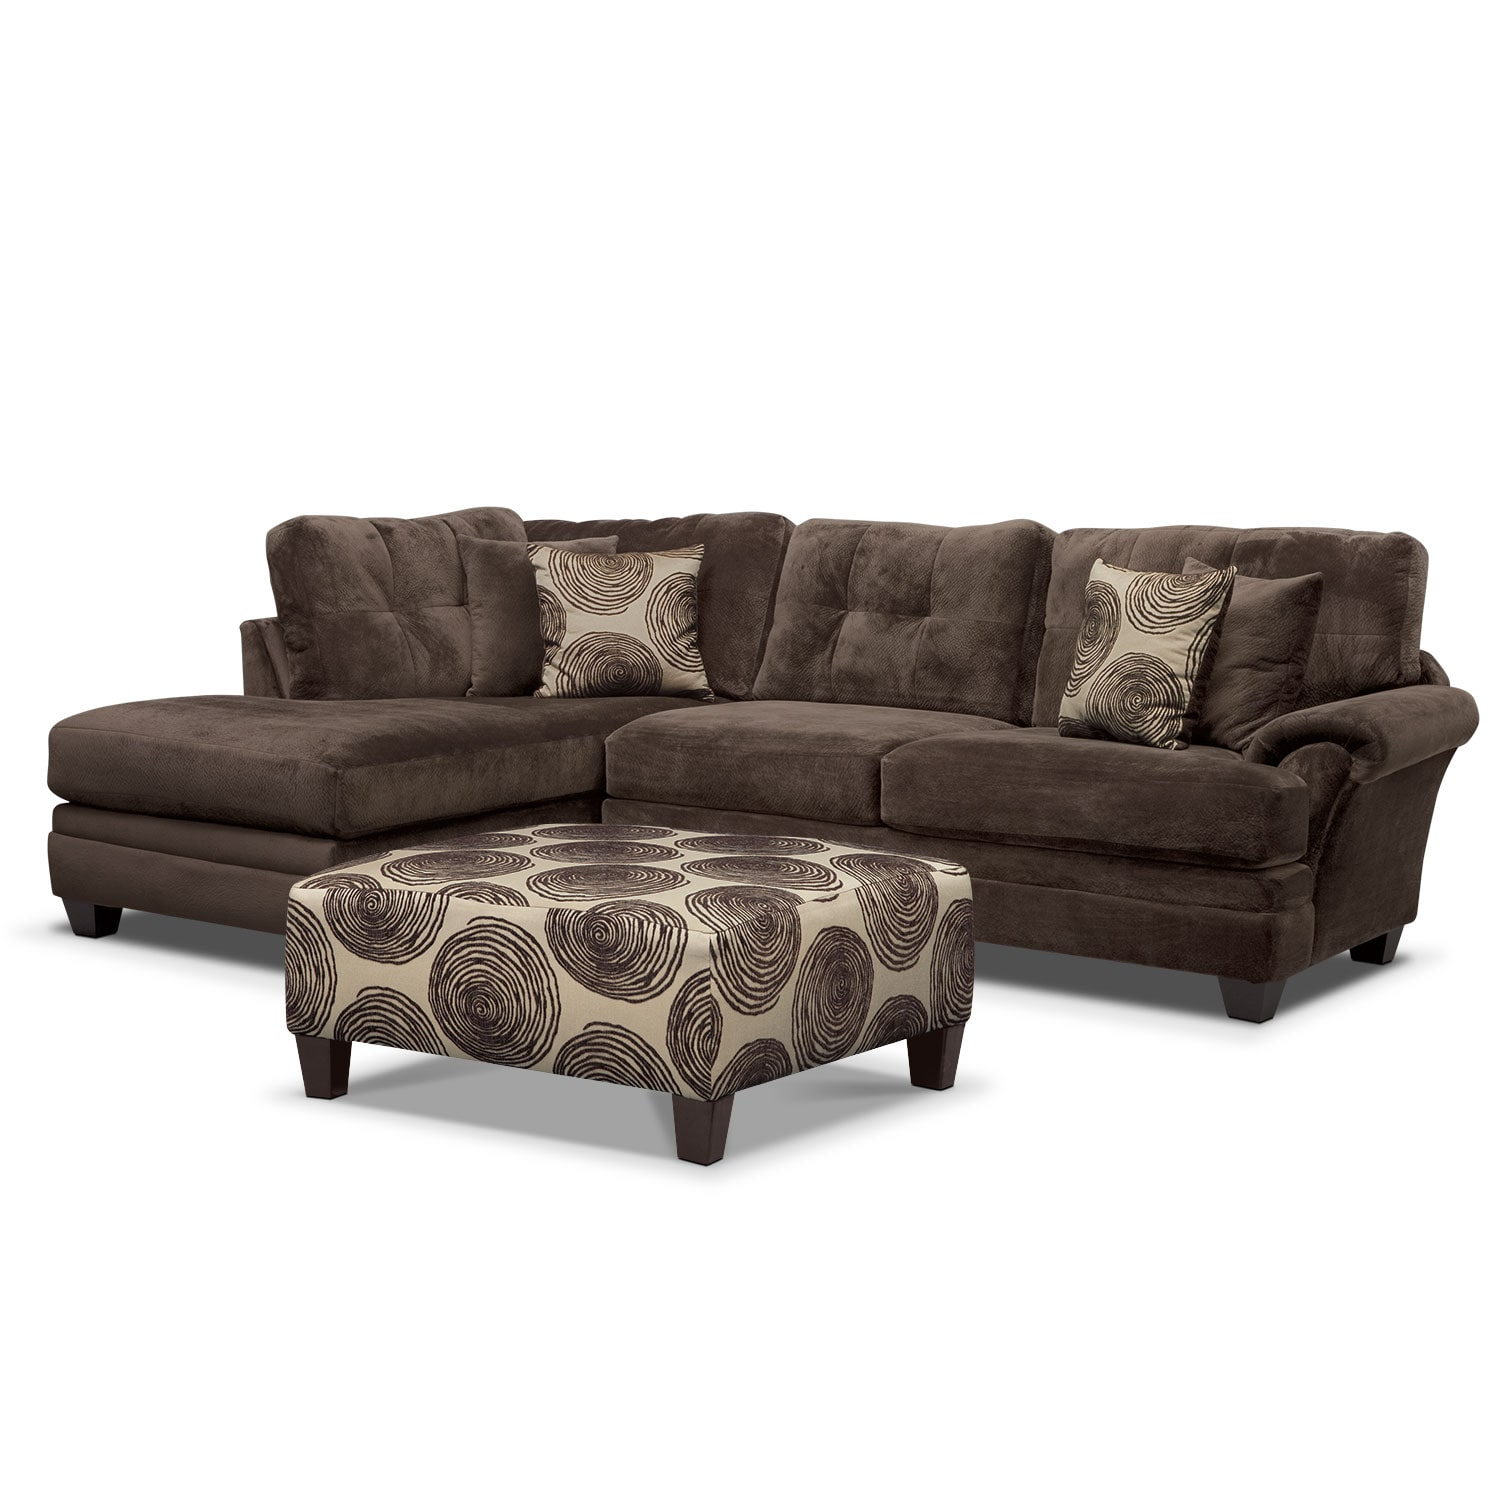 Cordelle 2-Piece Left-Facing Chaise Sectional and Cocktail Ottoman Set - Chocolate